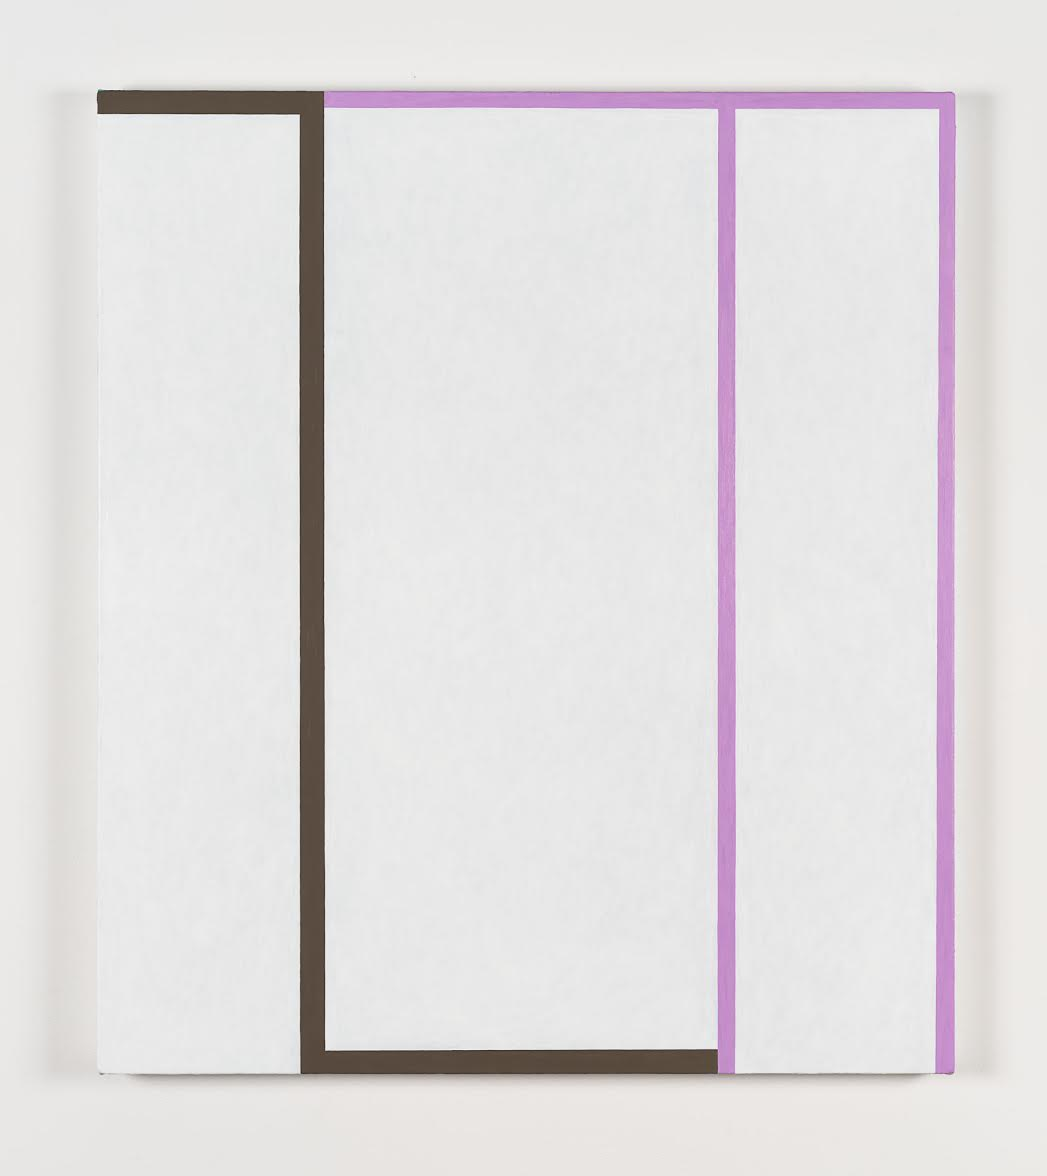 Andrew Spence  Untitled Brown/Violet , 2018 Oil on canvas 40 x 35 inches